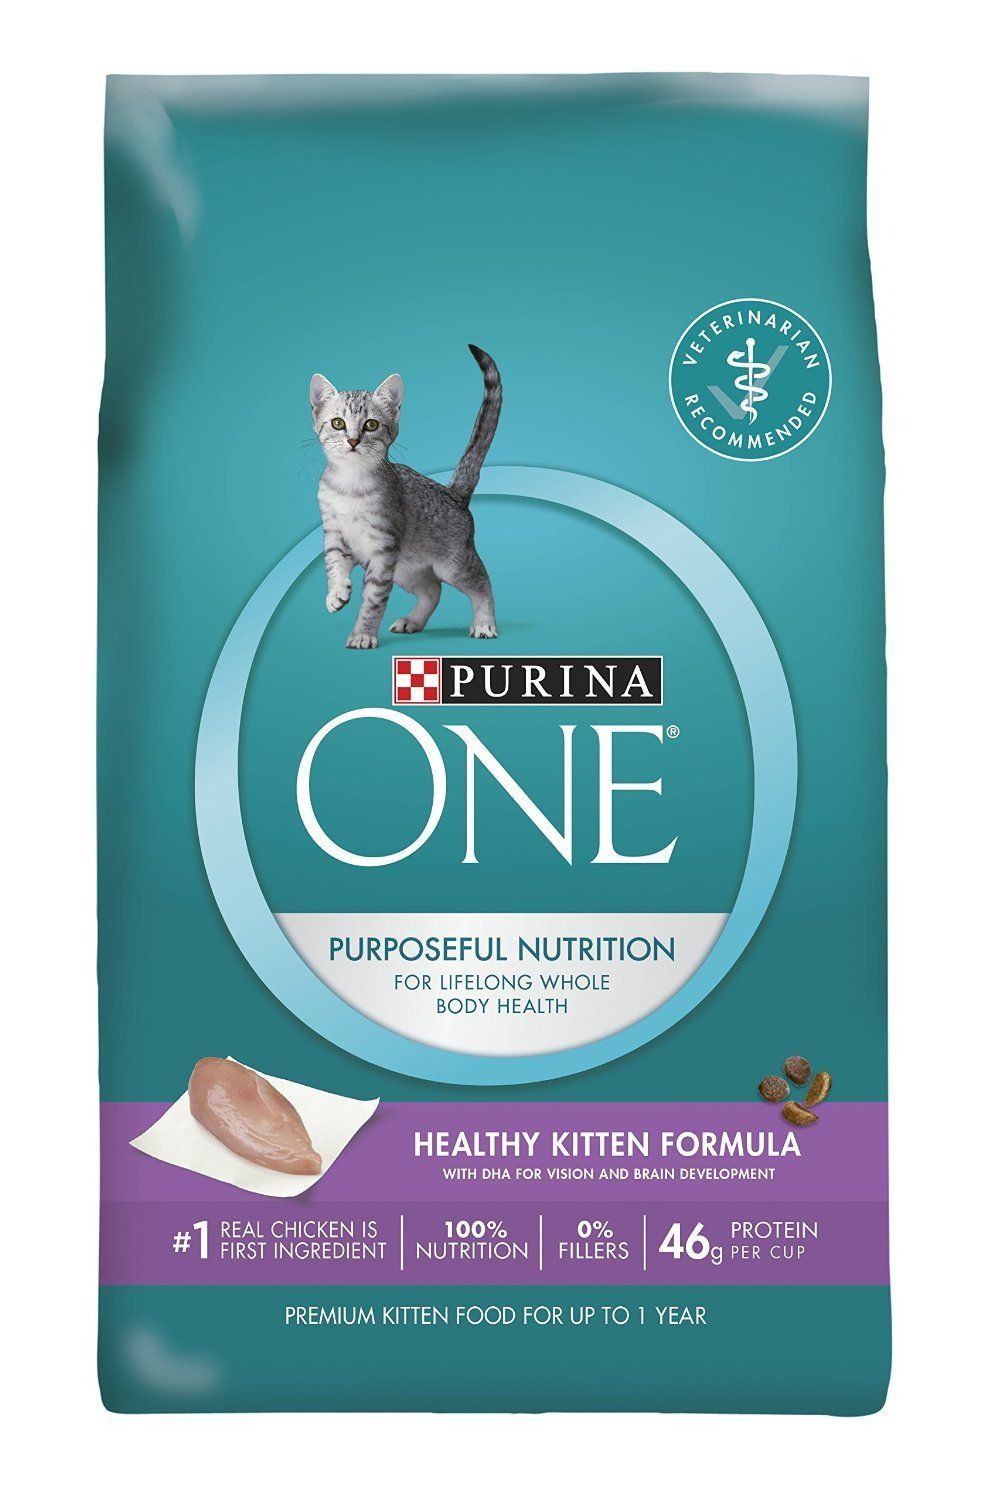 Purina ONE Healthy Kitten Formula Dry Cat Food >>> Check